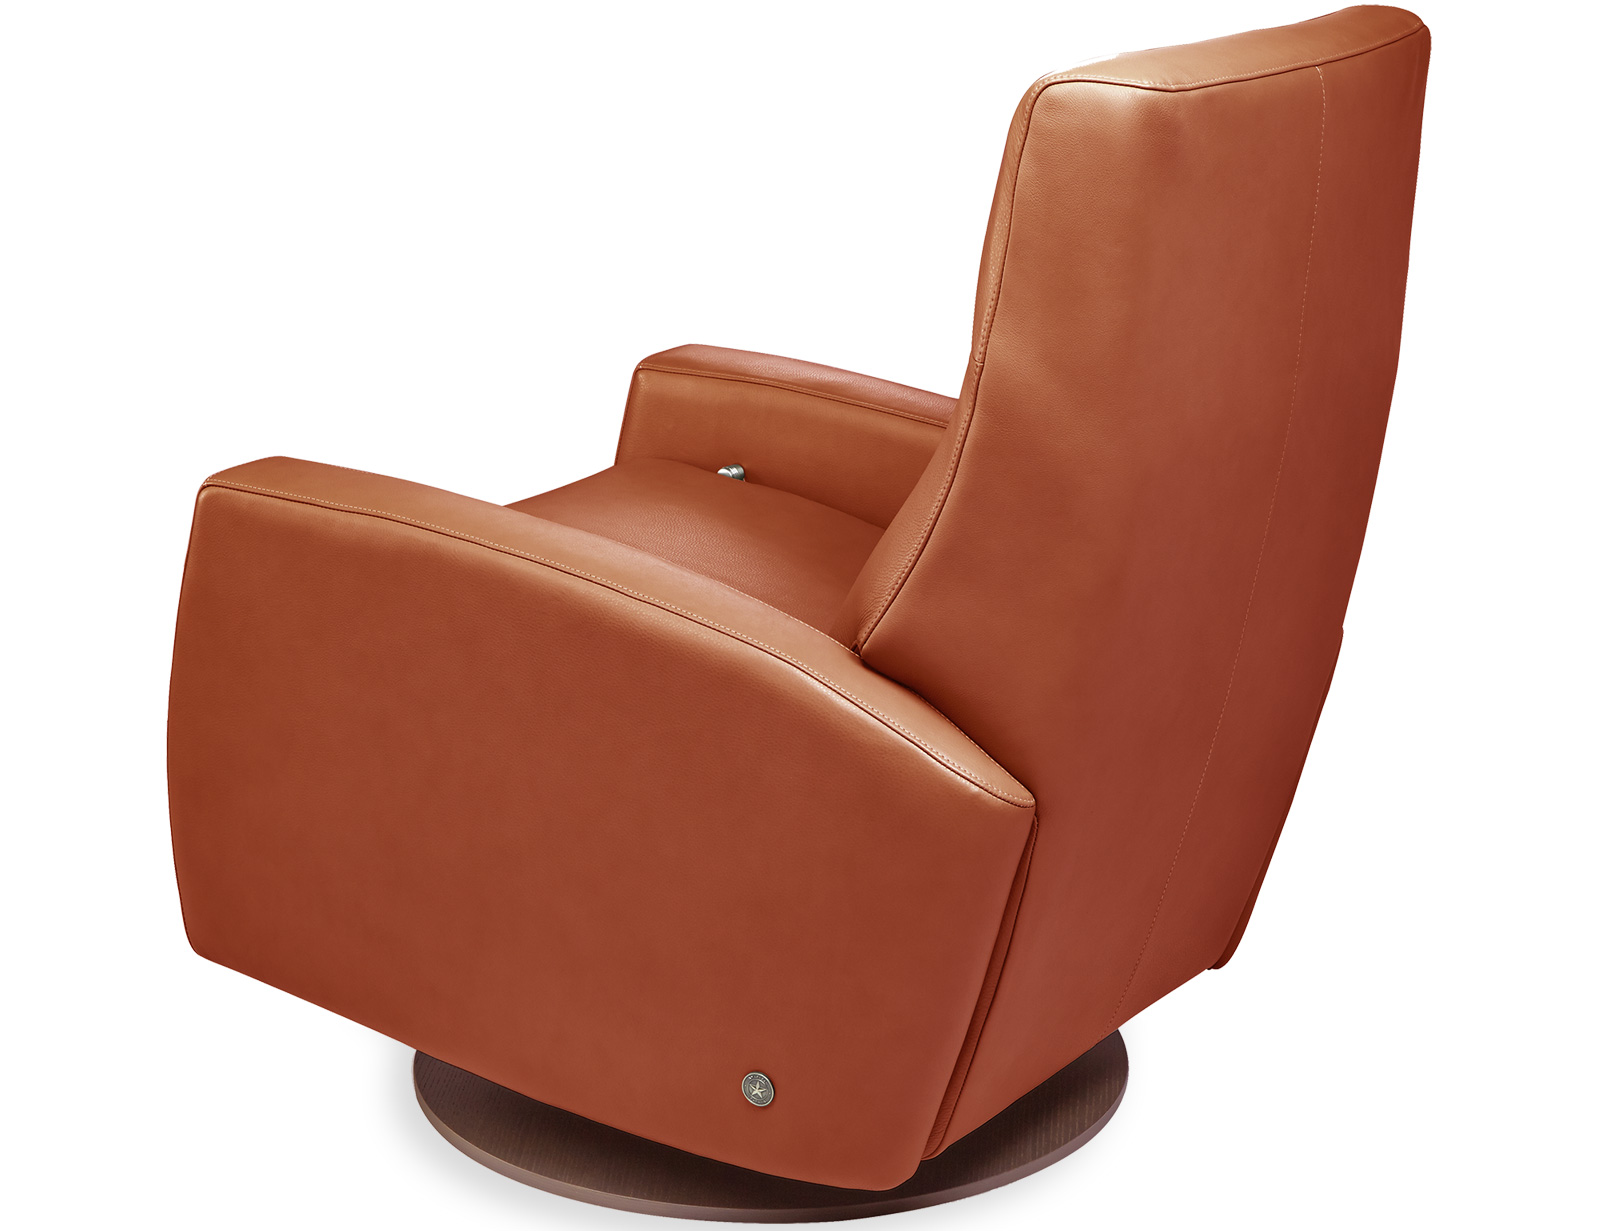 American Leather Eva Comfort Recliner available with swivel base